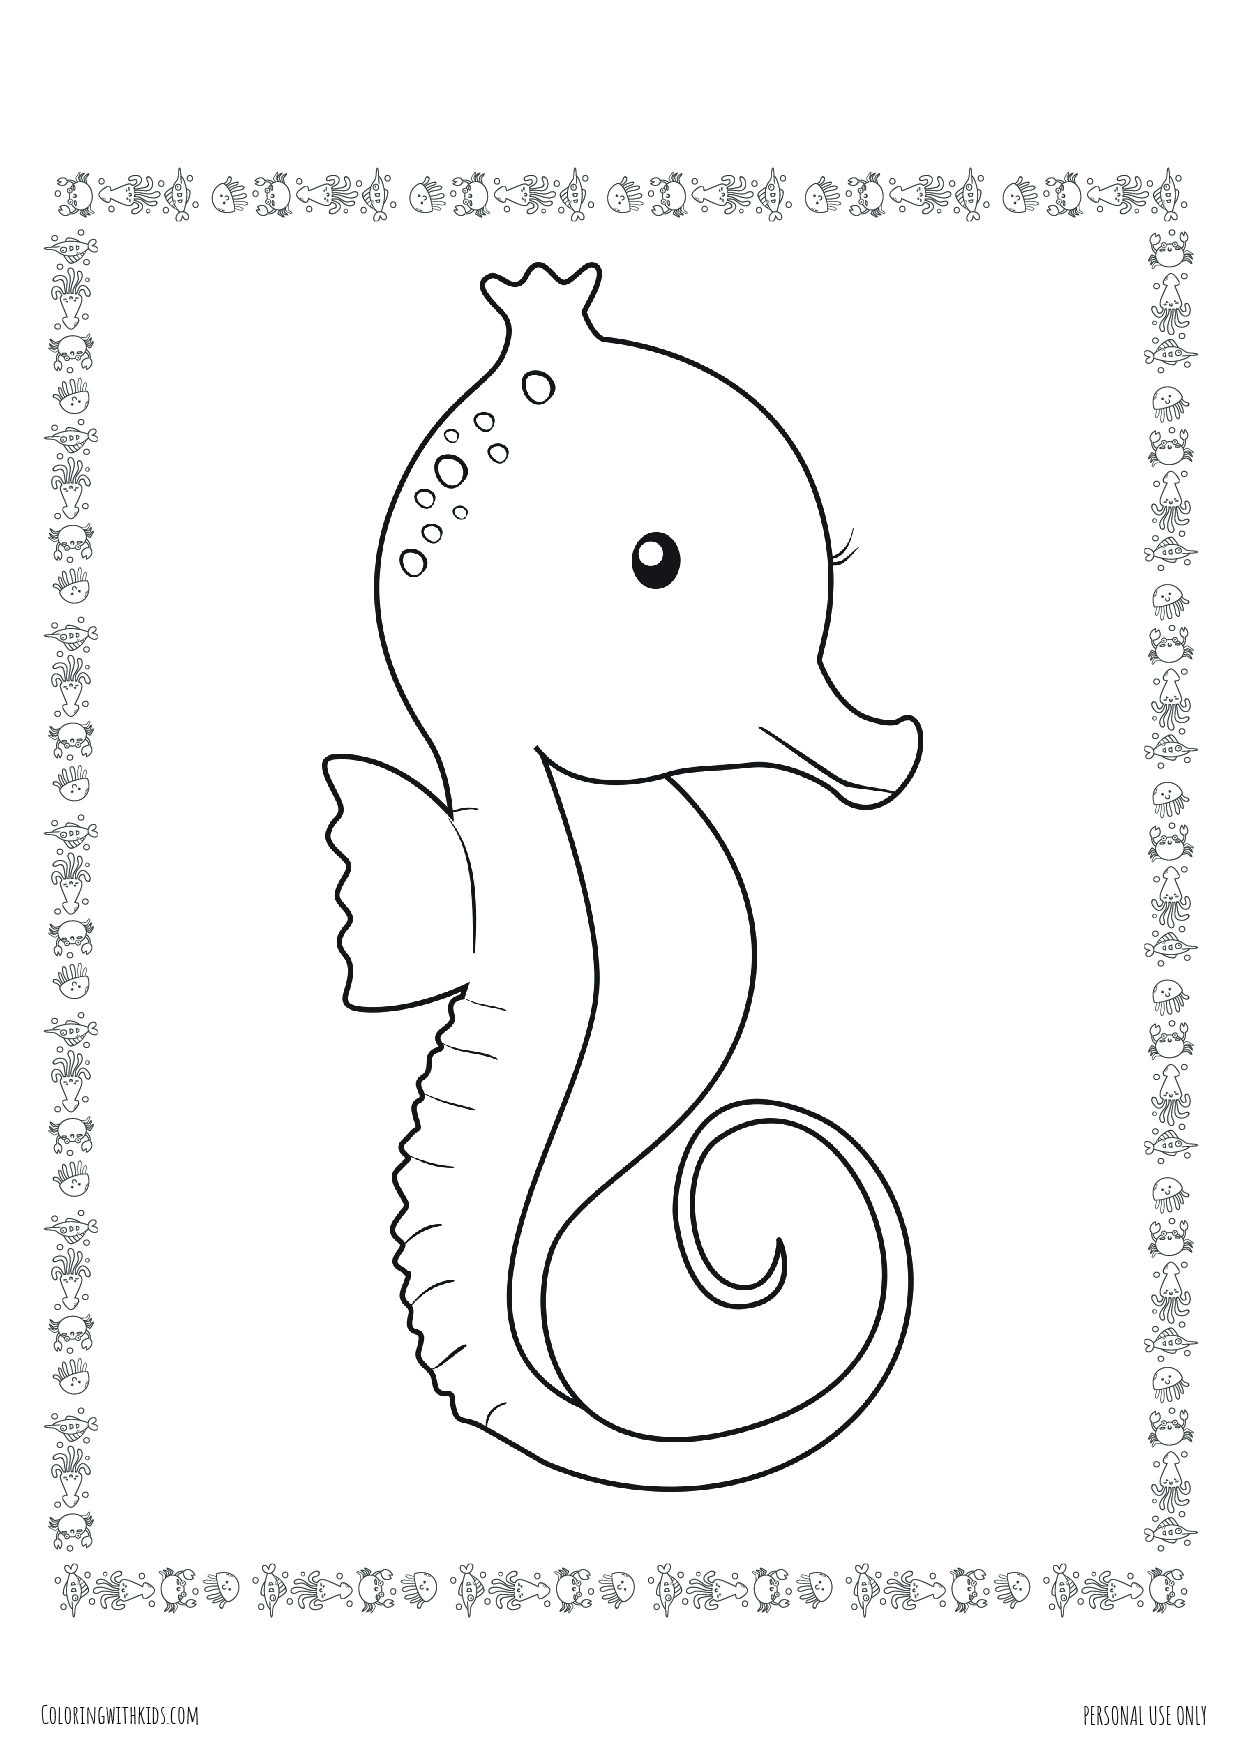 Seahorse with border coloring page